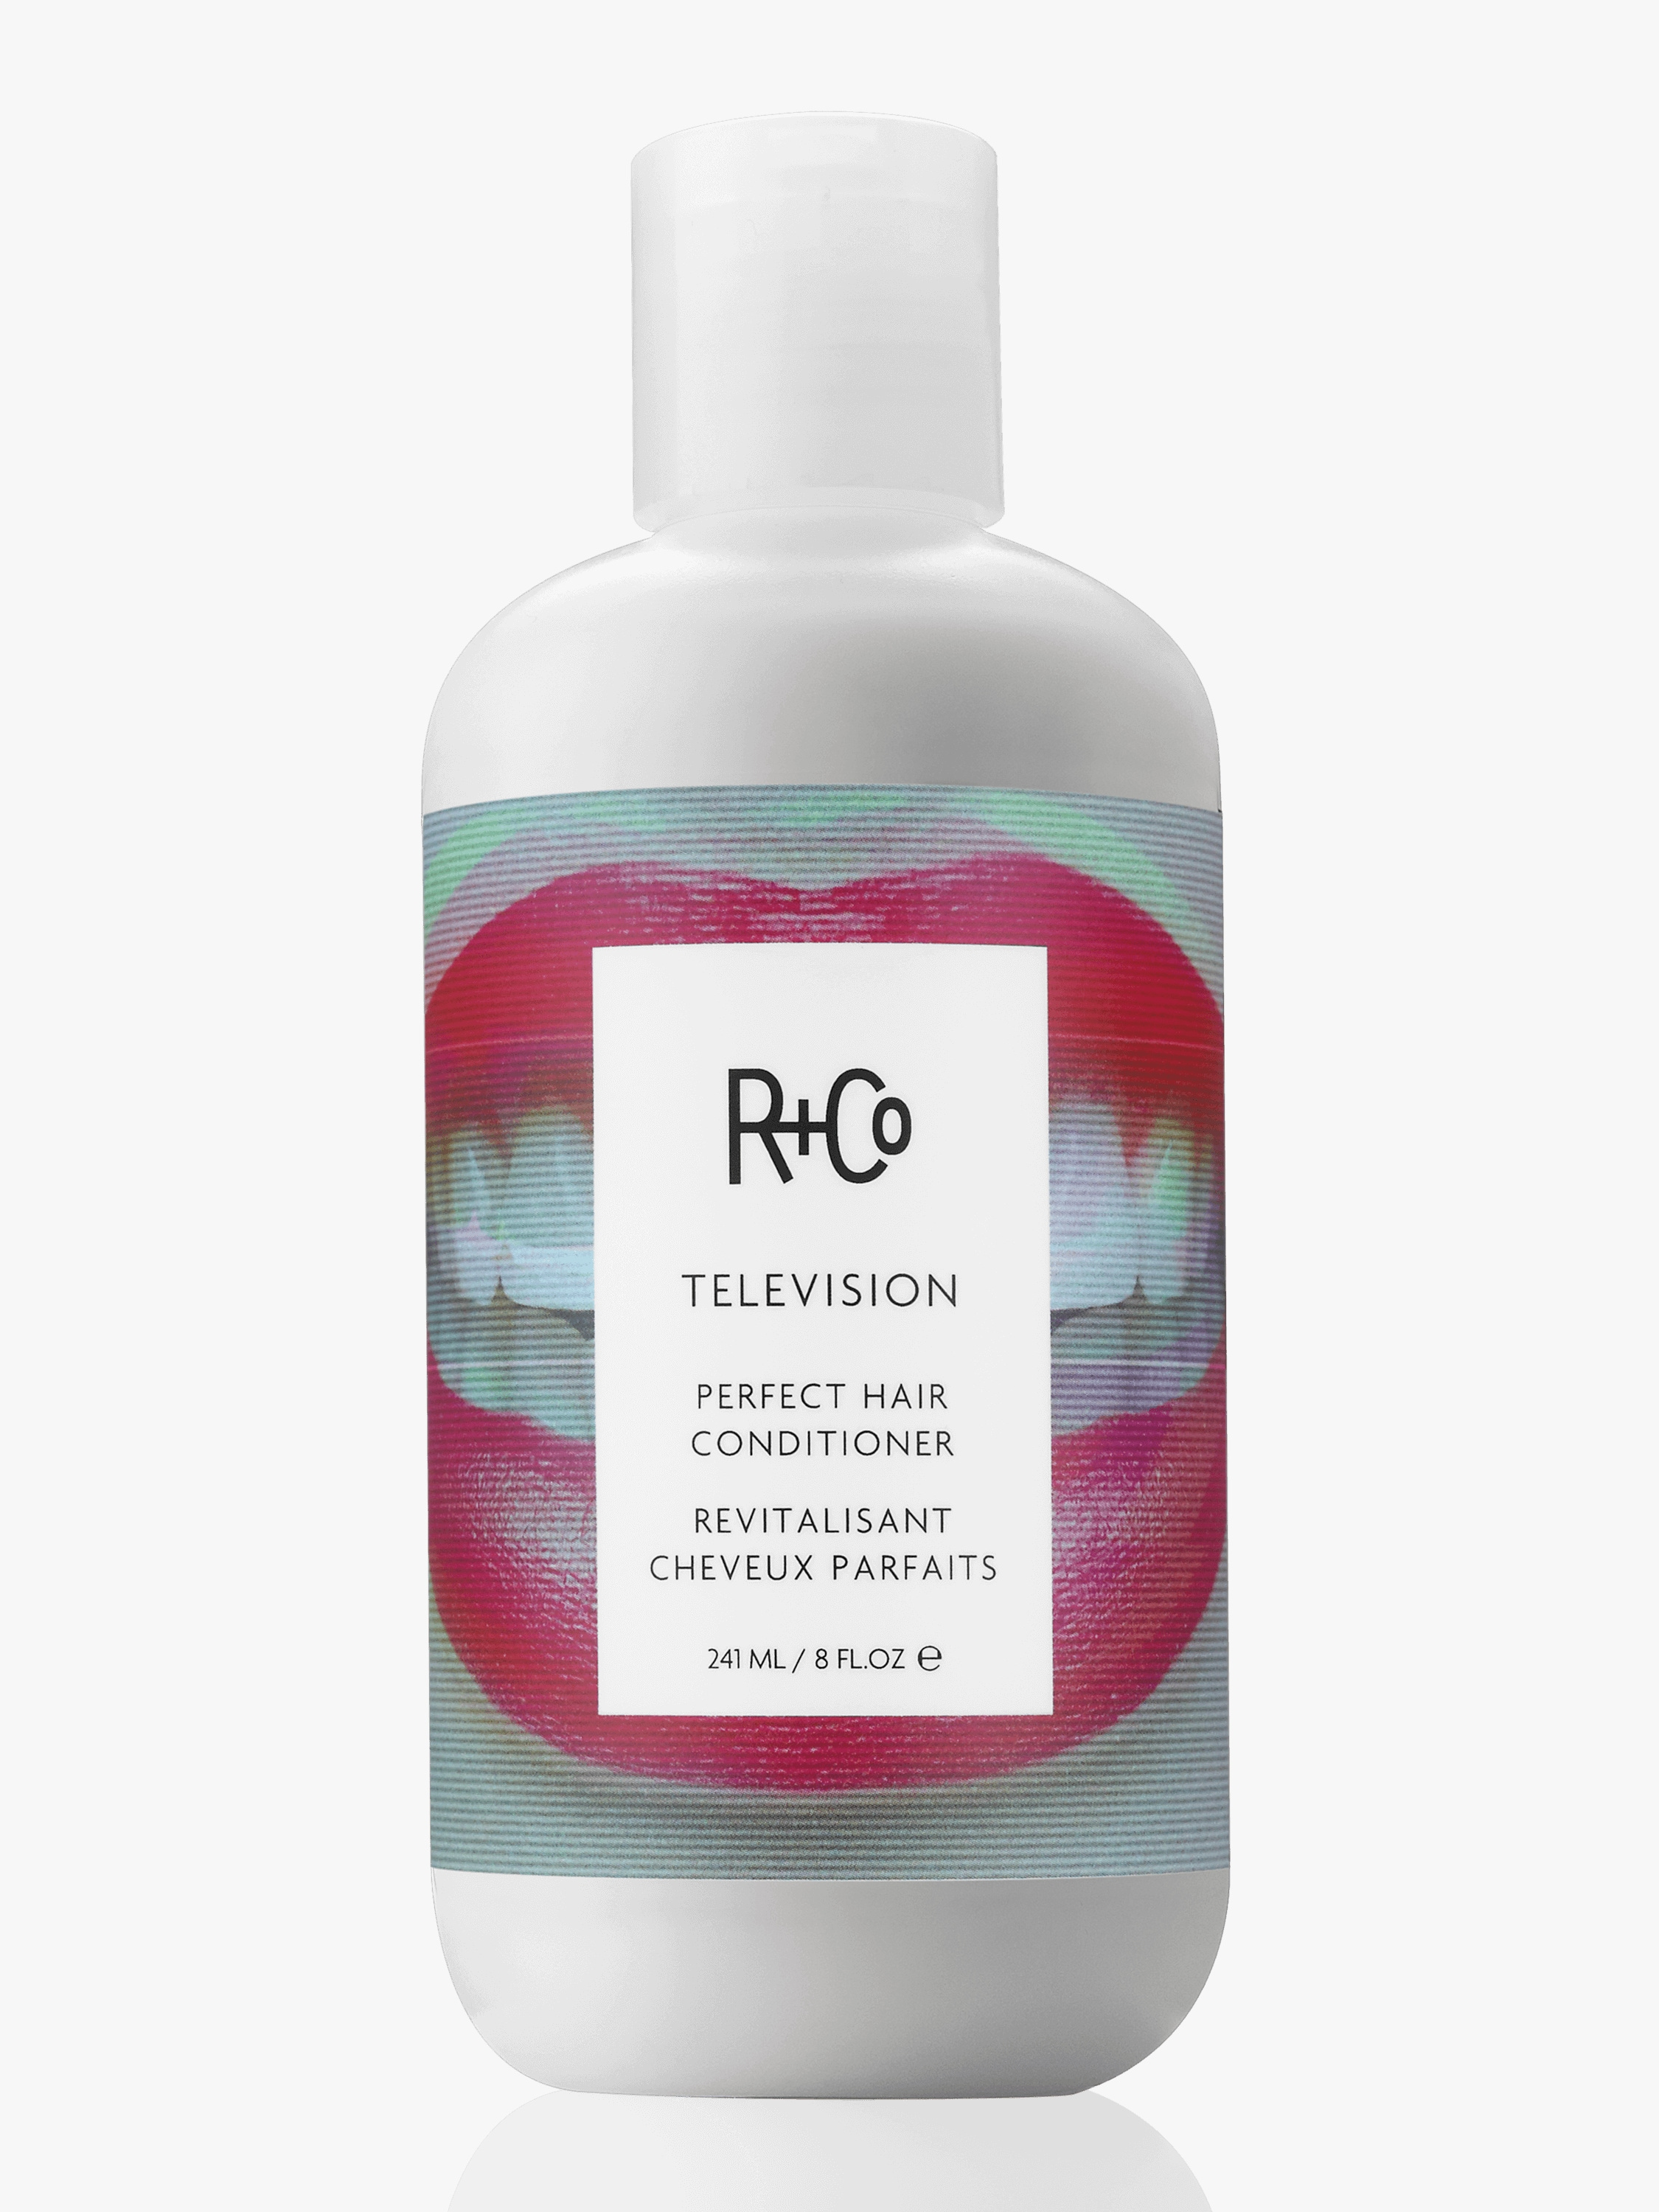 R+Co Television Perfect Hair Conditioner 2